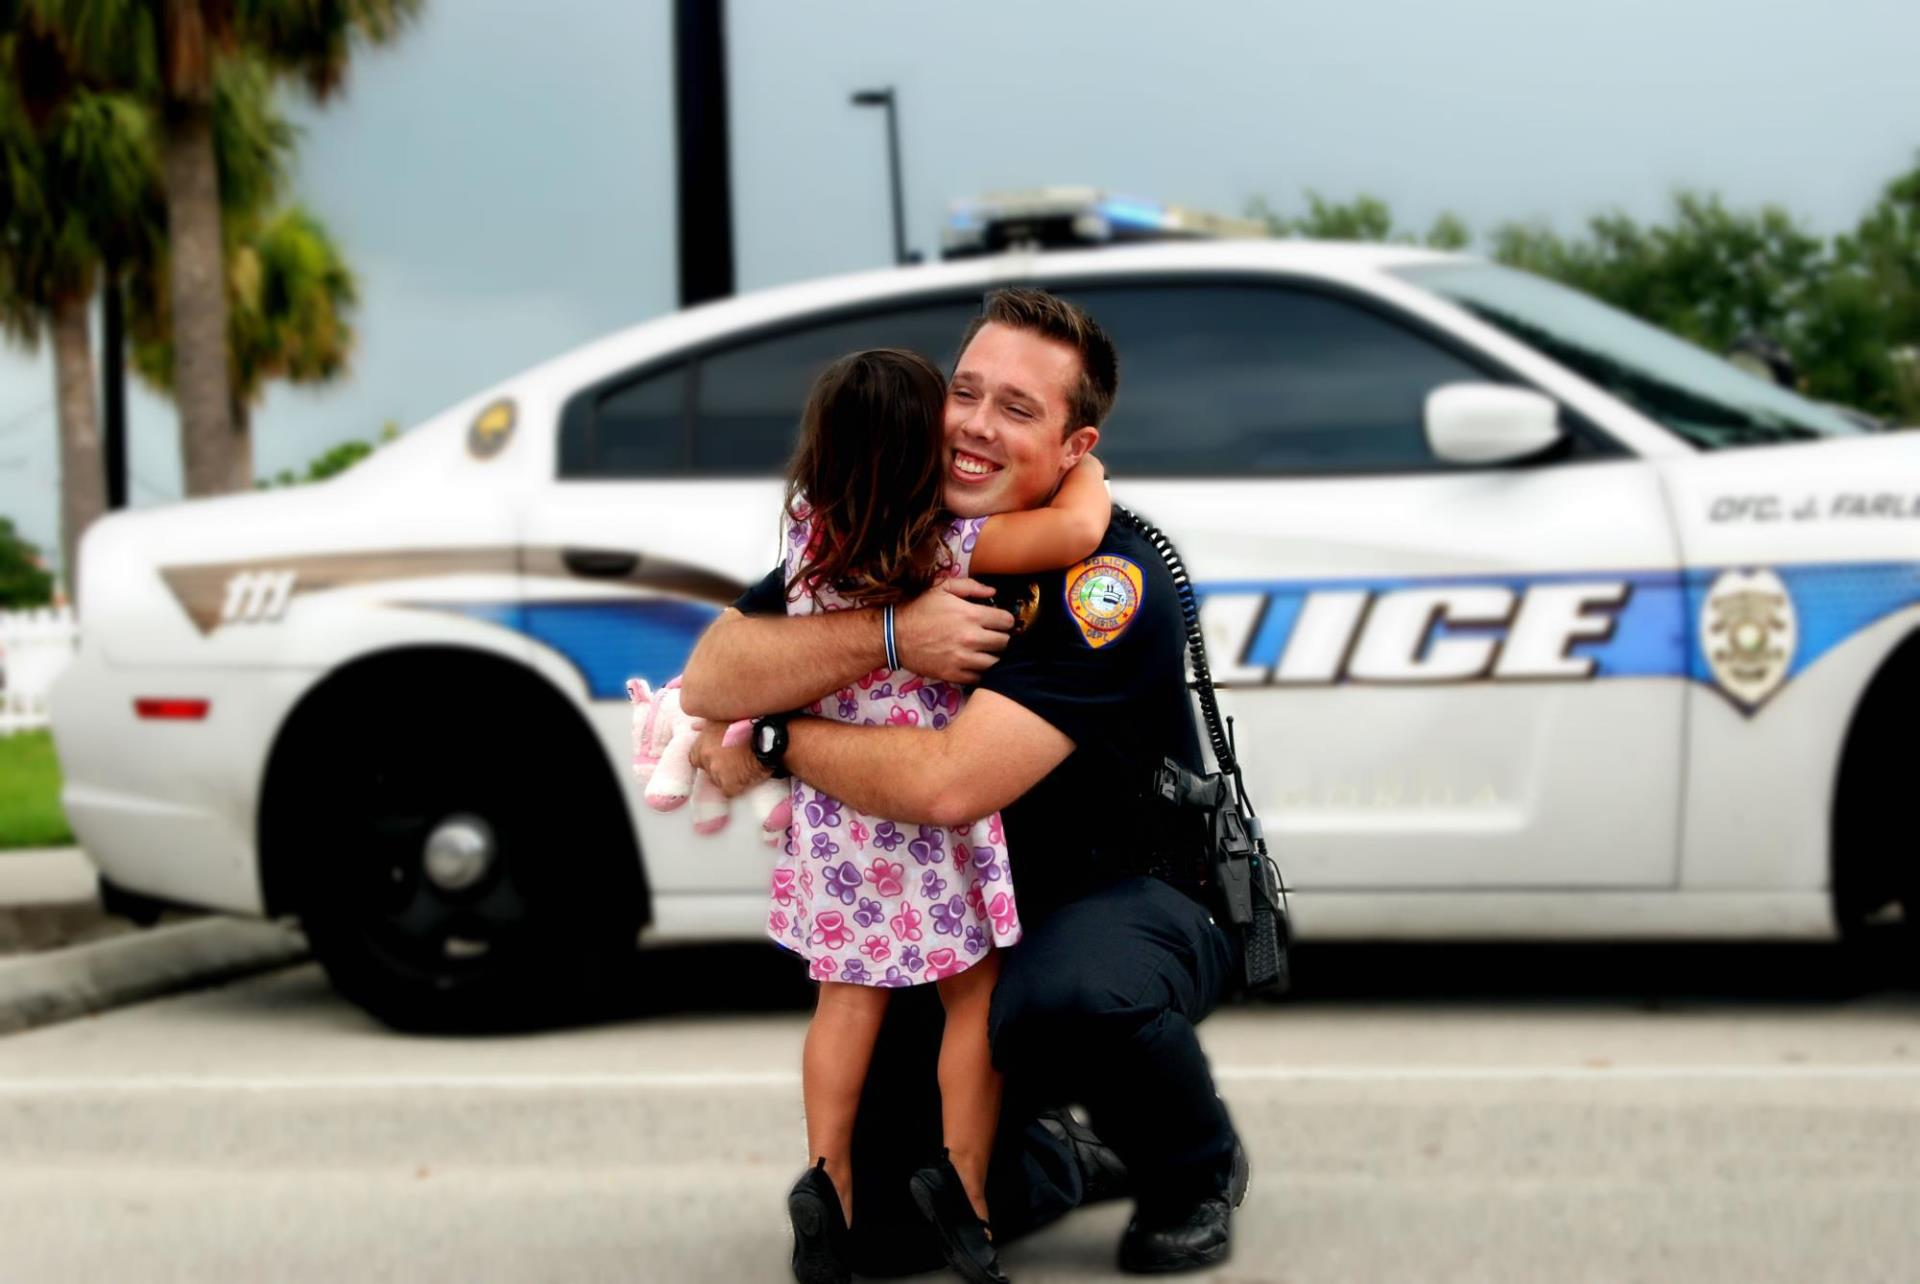 Officer Farley Hugging Child